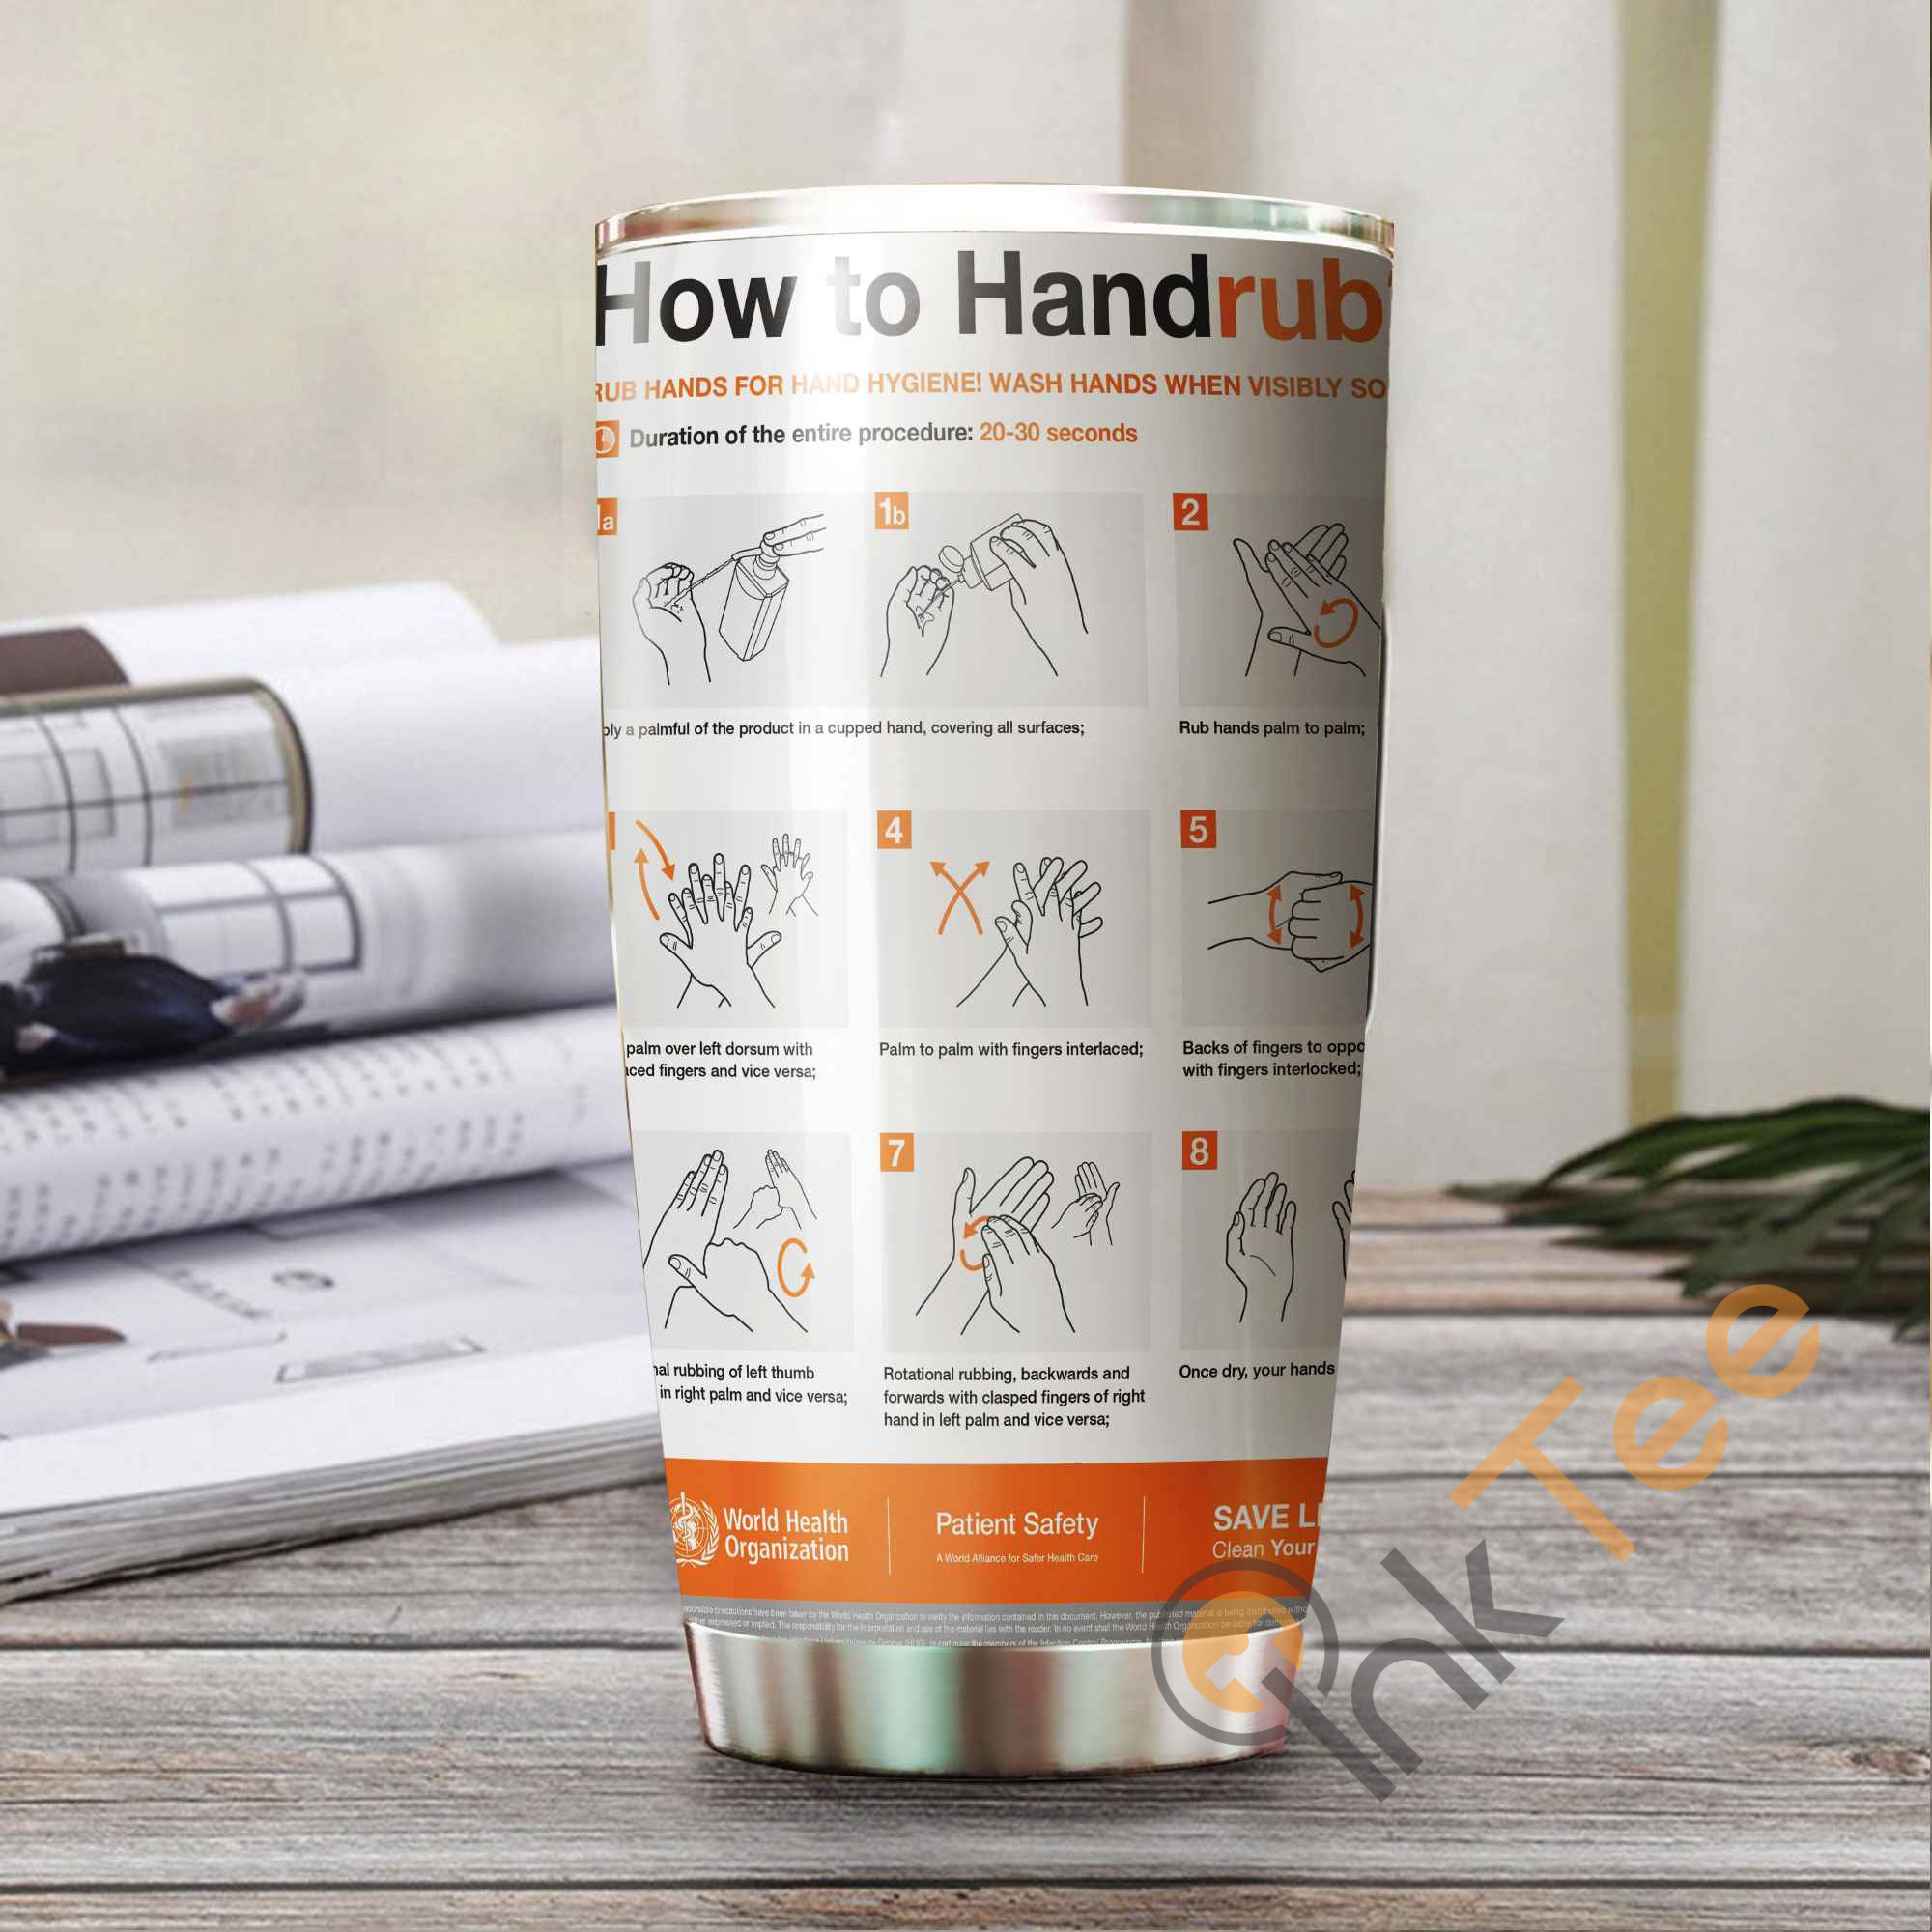 How To Handrub? Amazon Best Seller Sku 3214 Stainless Steel Tumbler